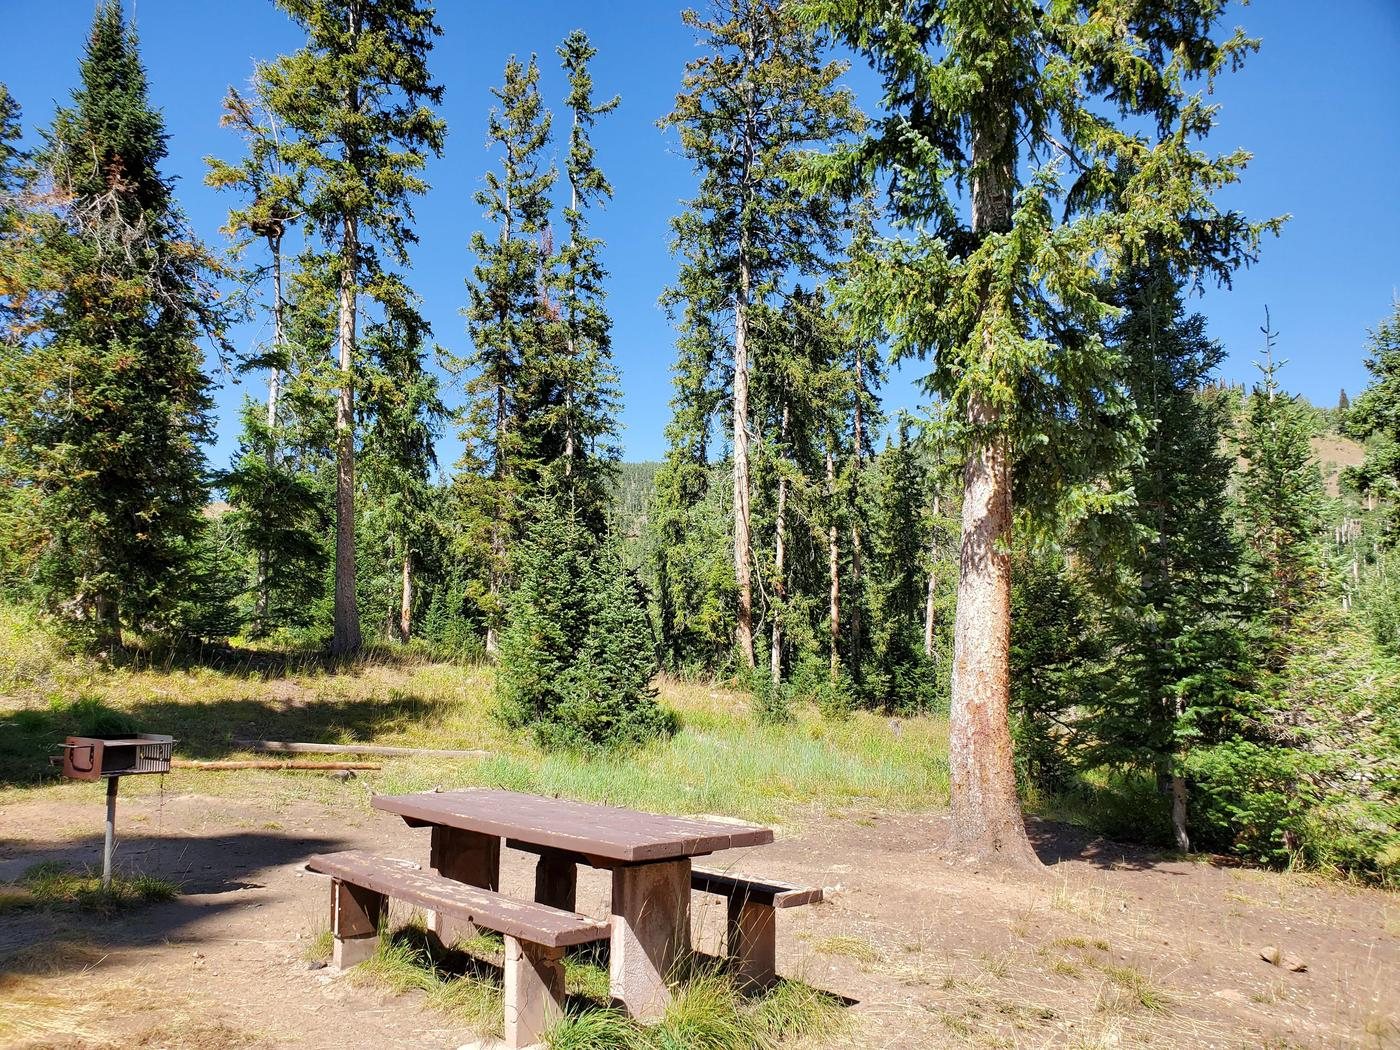 Flat Canyon Campground Site #11cFlat Canyon Campground Site #11